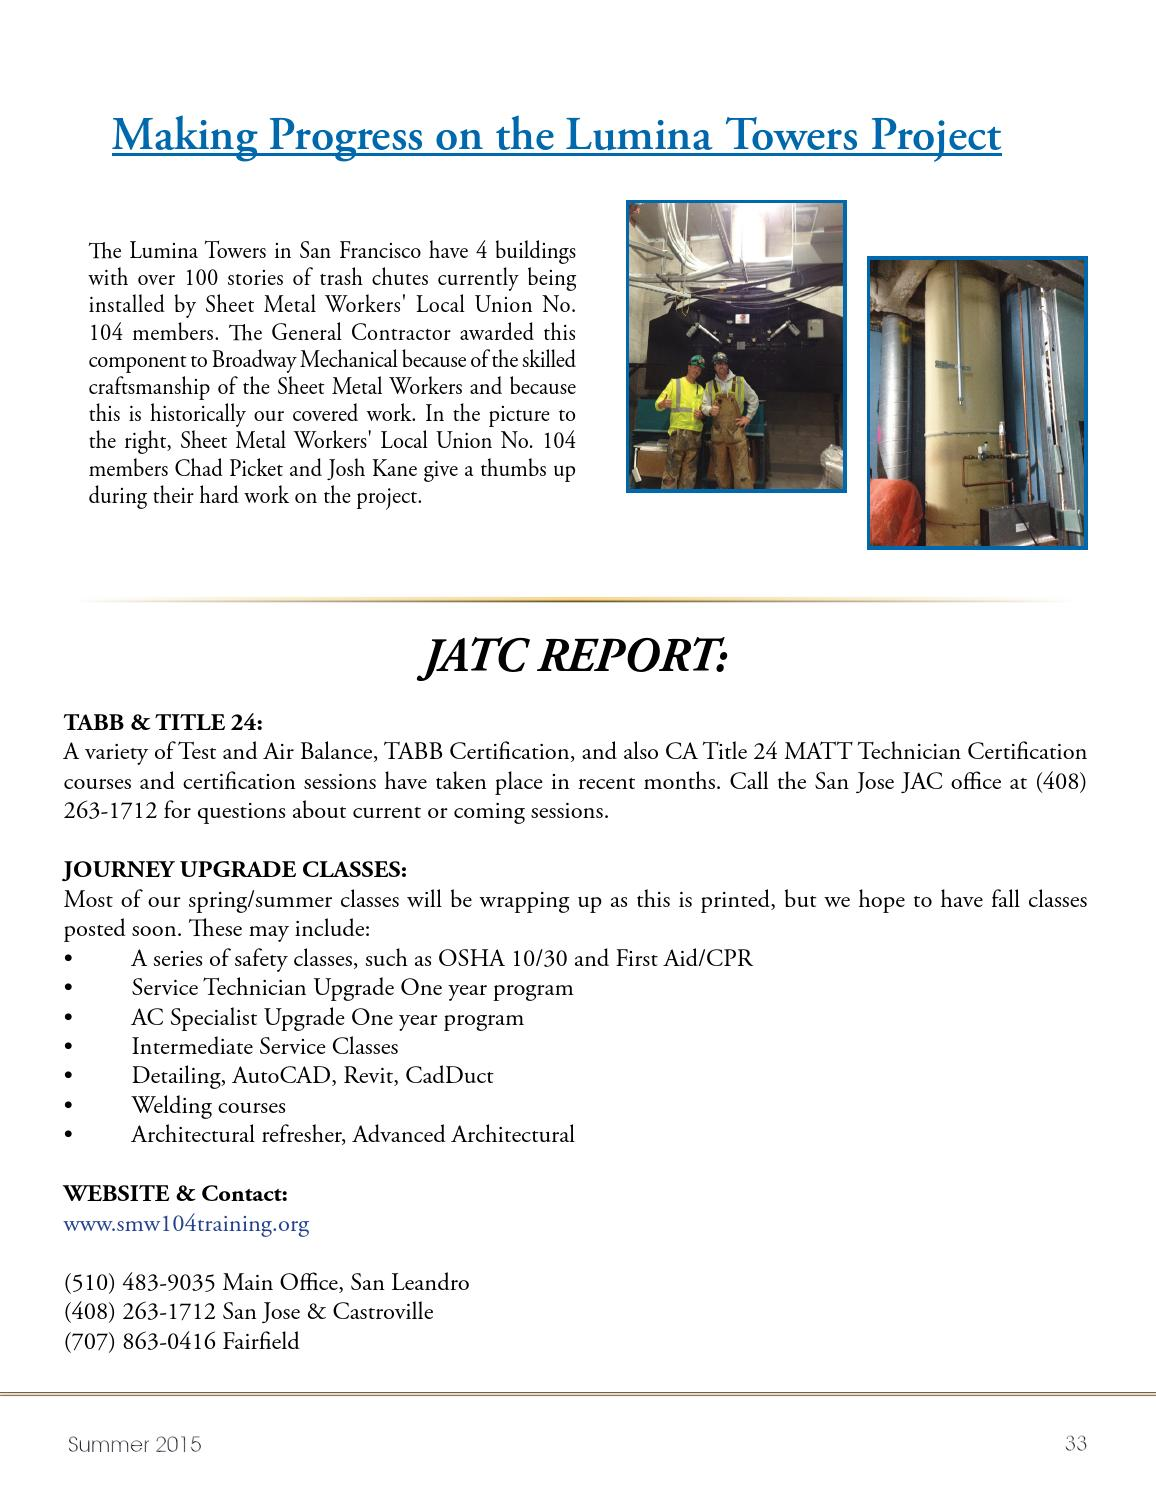 Sheet Metal Workers Local Union No 104 Summer 2015 Newsletter By